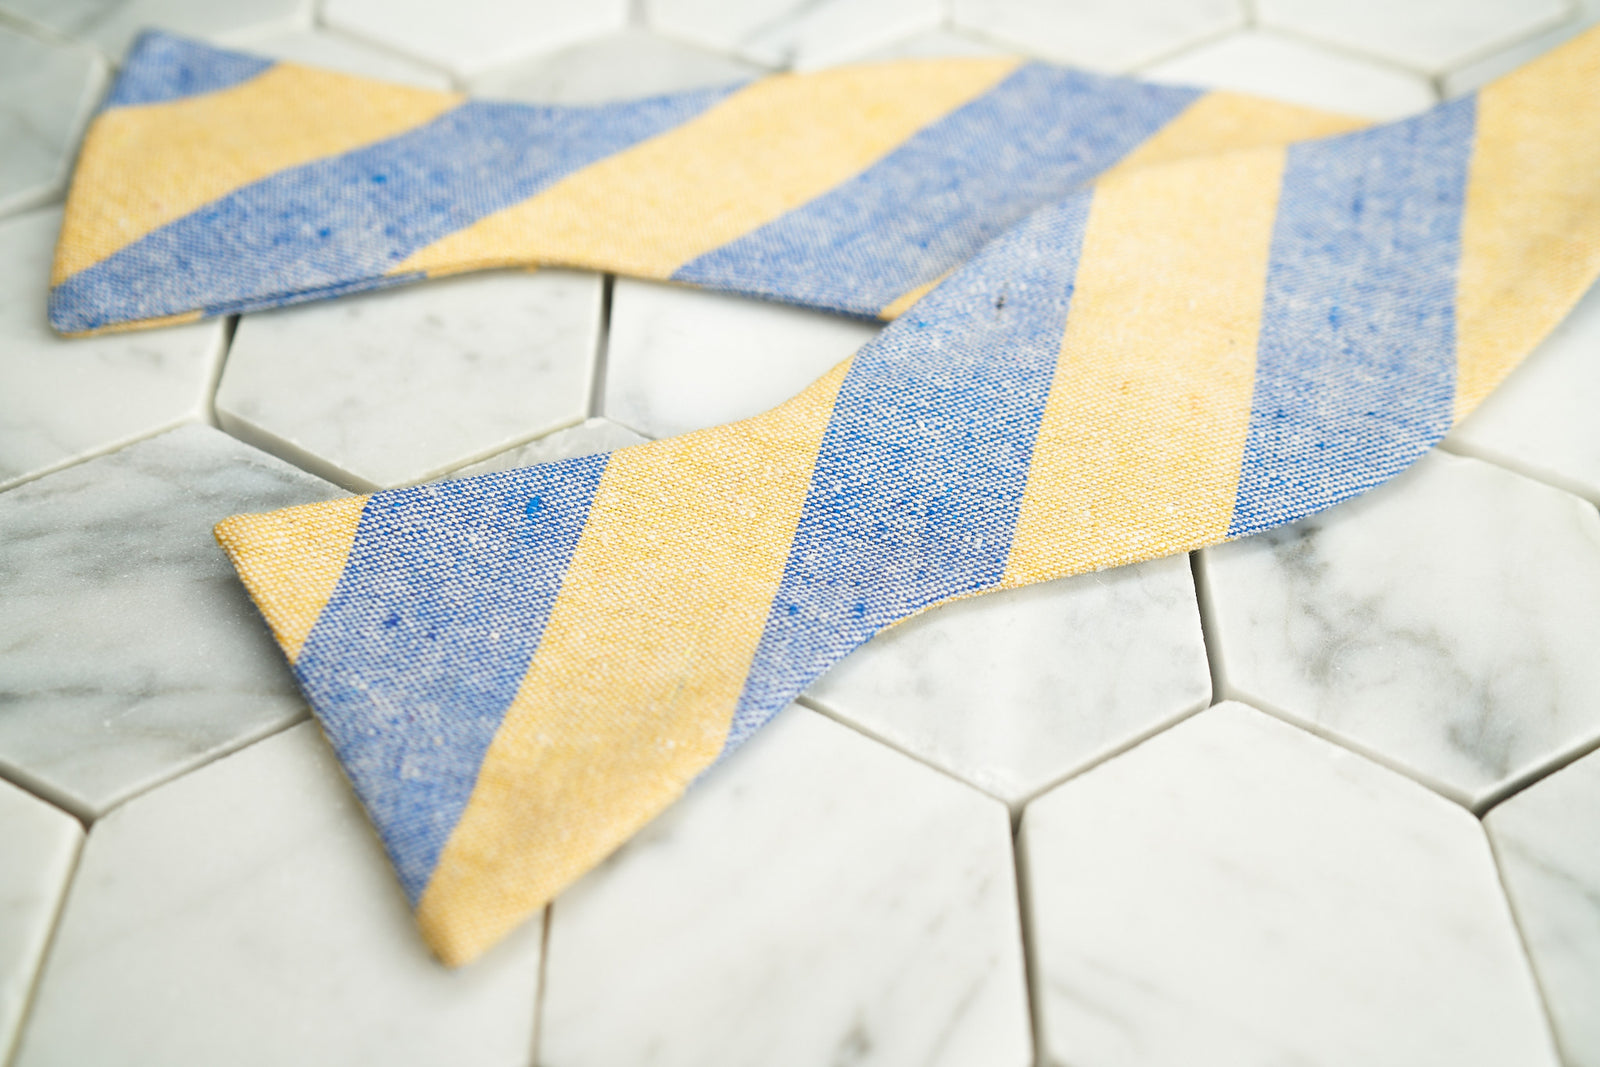 An image of the Dear Martian yellow and blue striped linen bow tie; lying flat and untied.